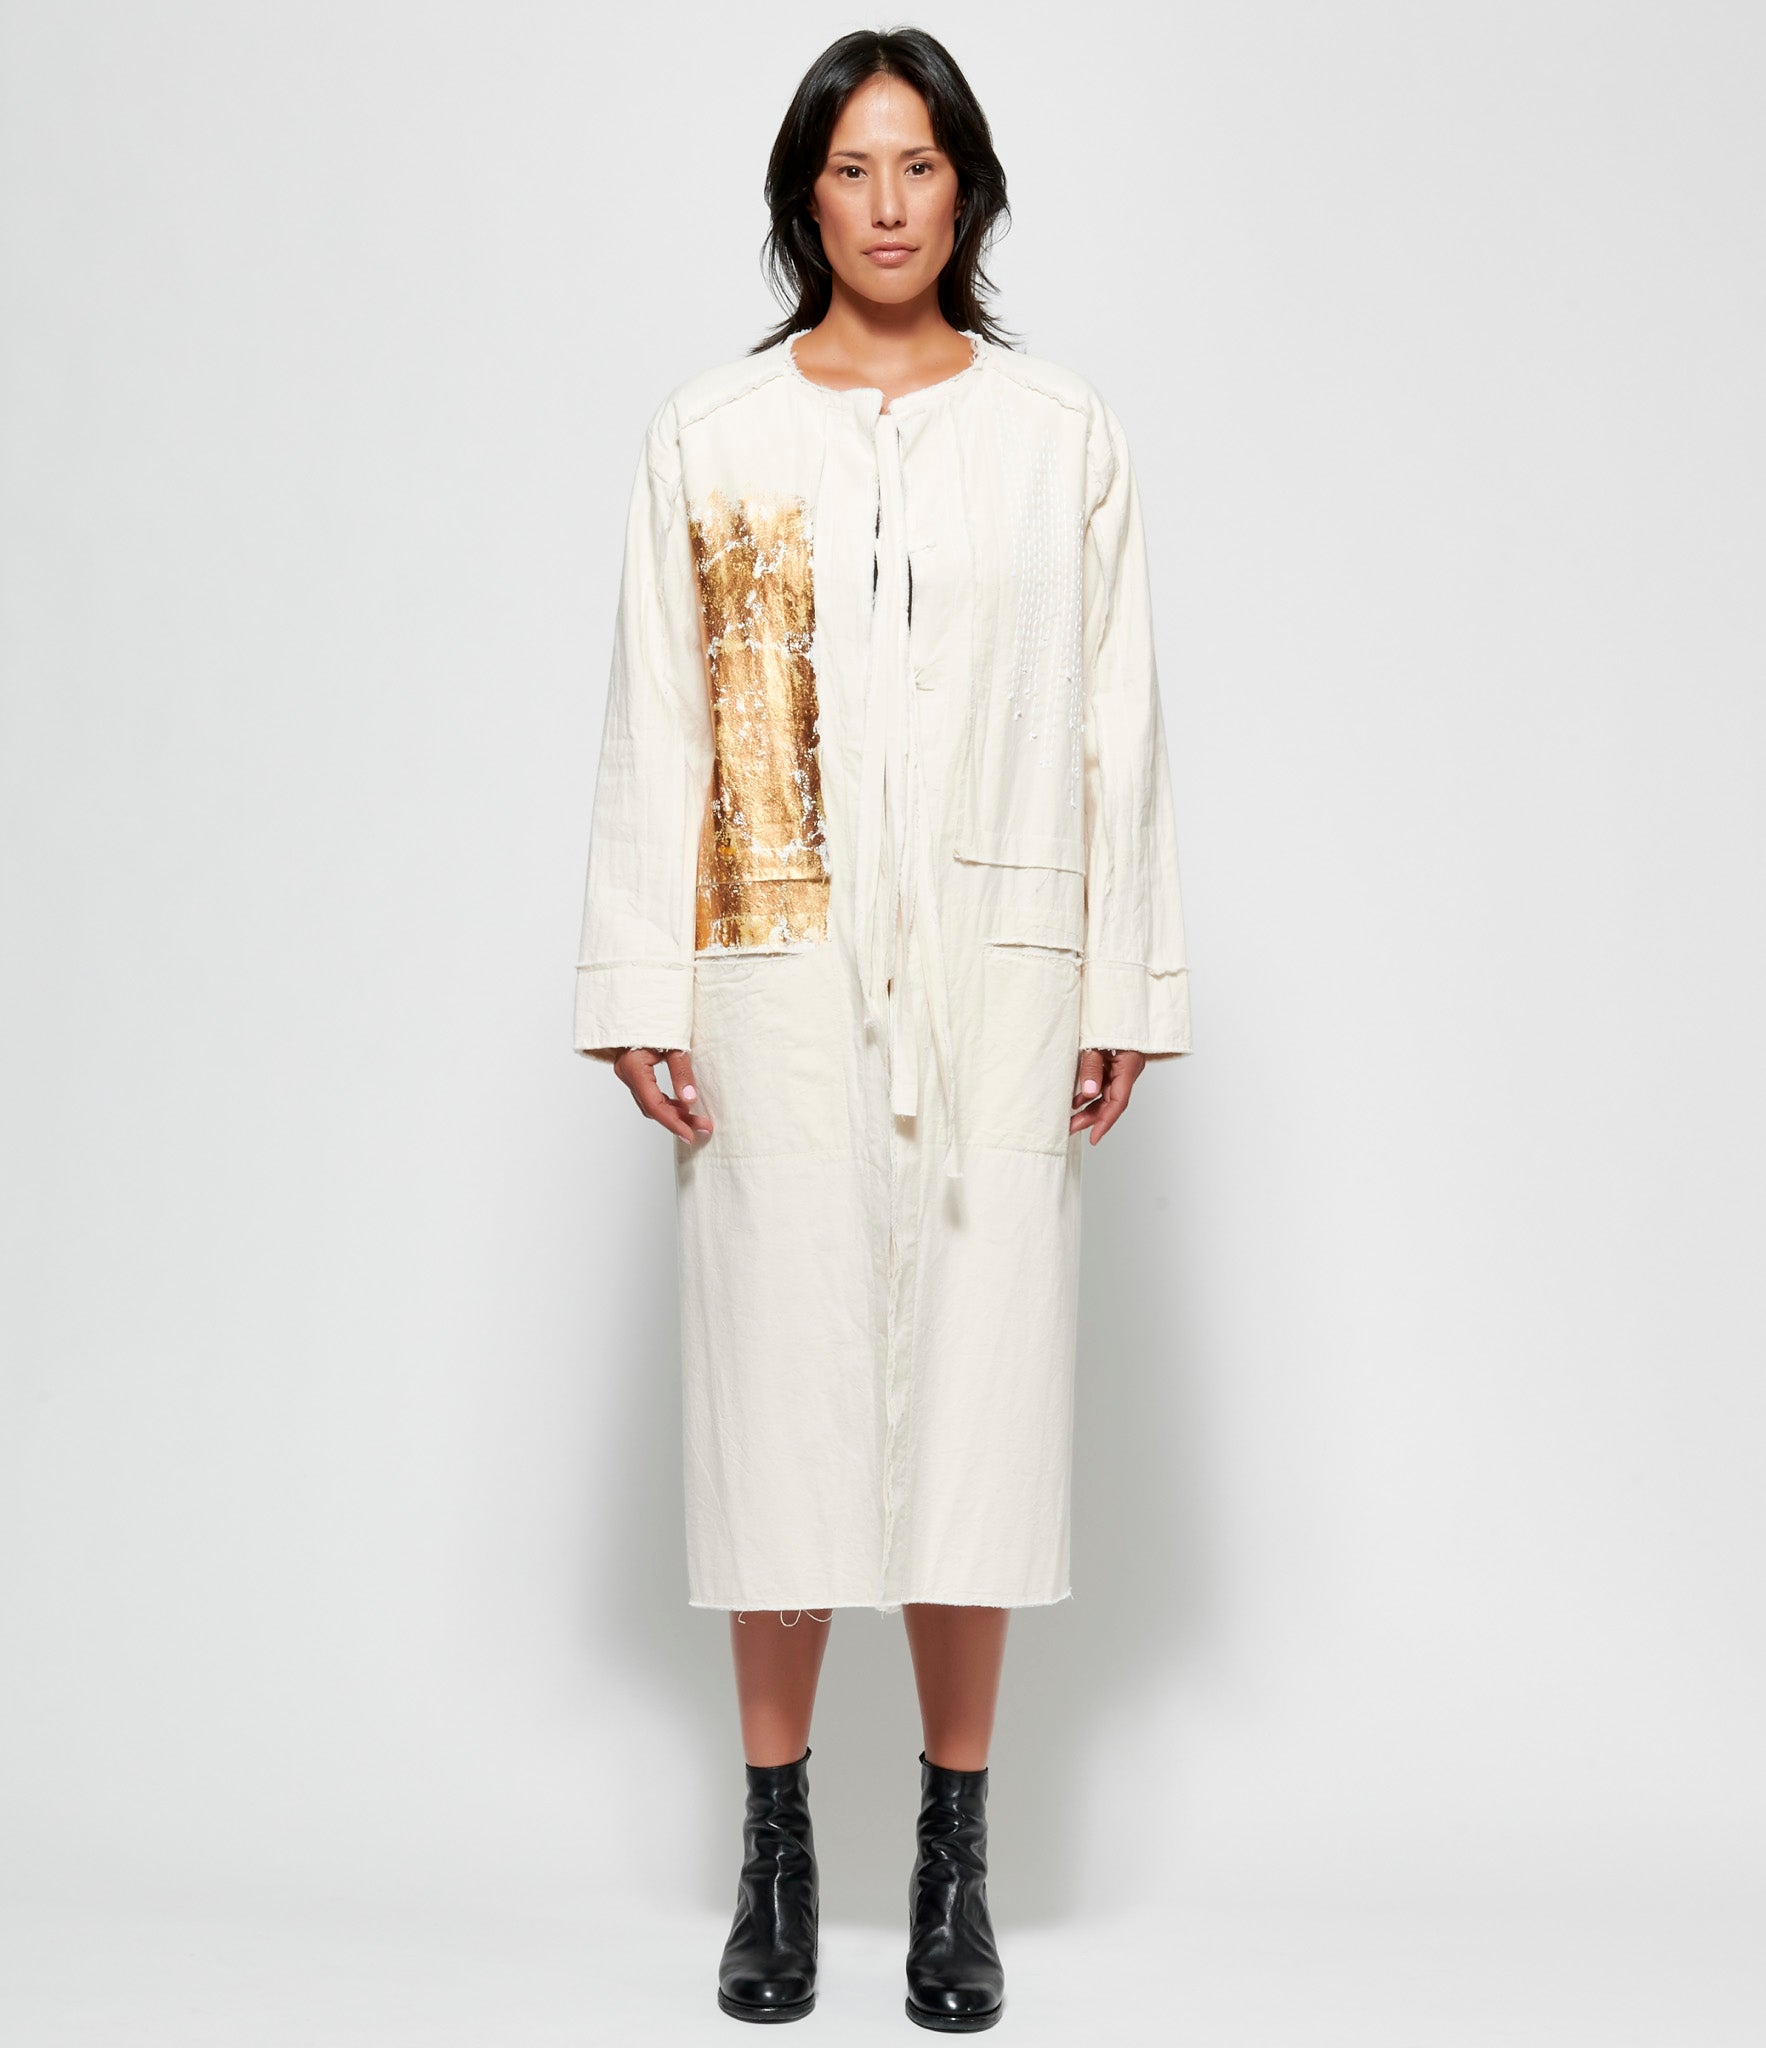 Replika Stitched Gold Foil Coat